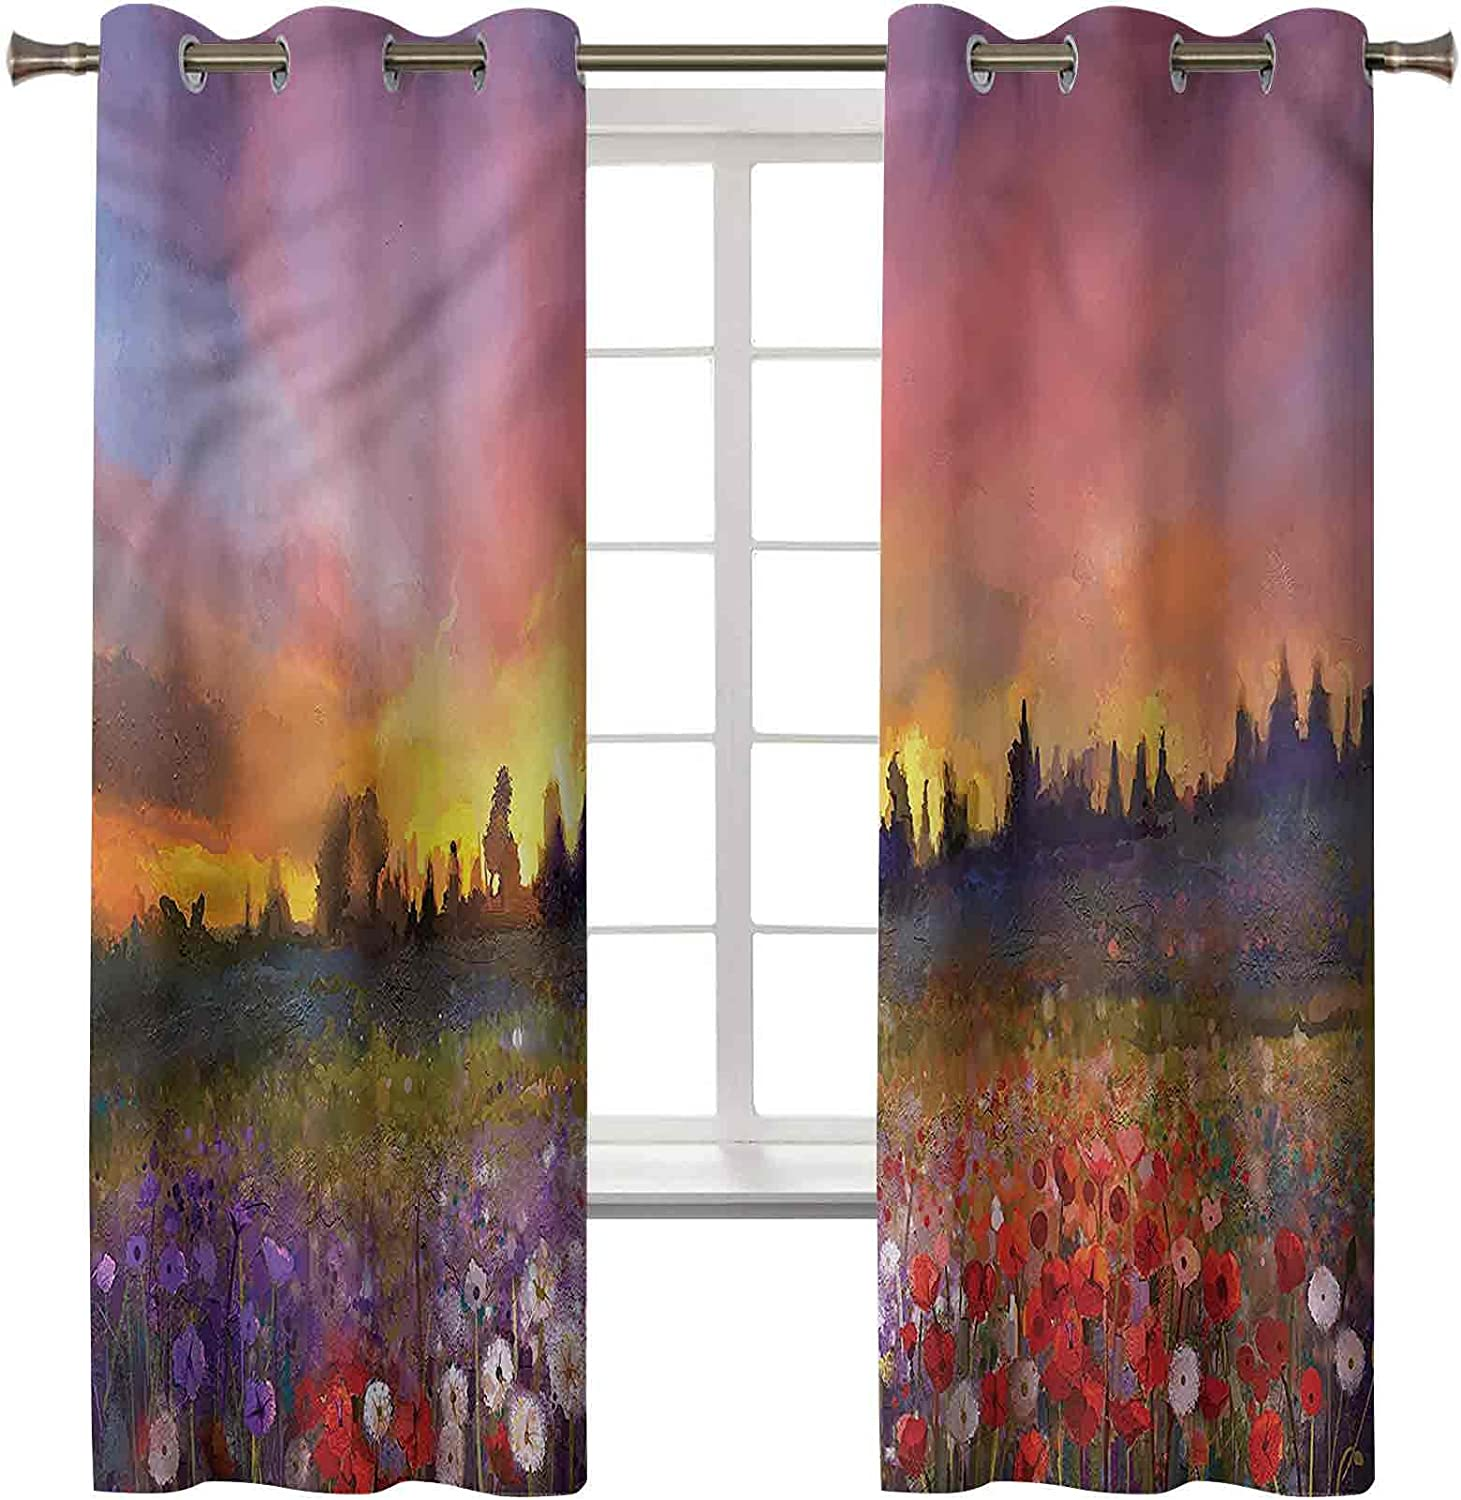 Flower Blackout Curtains Set of 2 Panels 63L x Da Room Inch 42W 25% OFF Tucson Mall